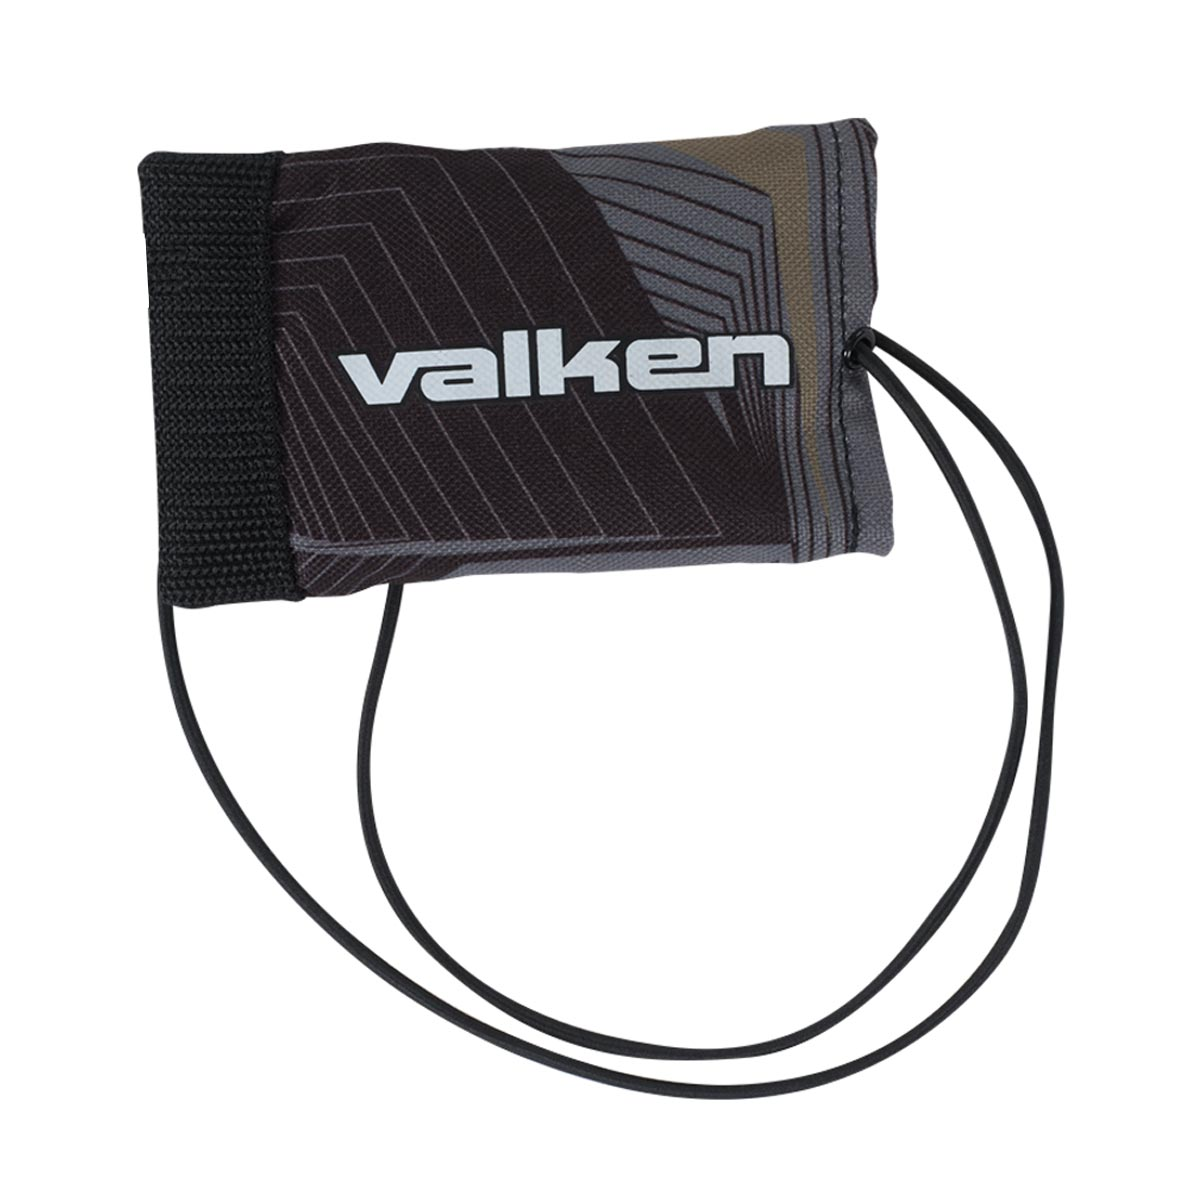 Valken Redemption Vexagon Barrel Cover Gold Black